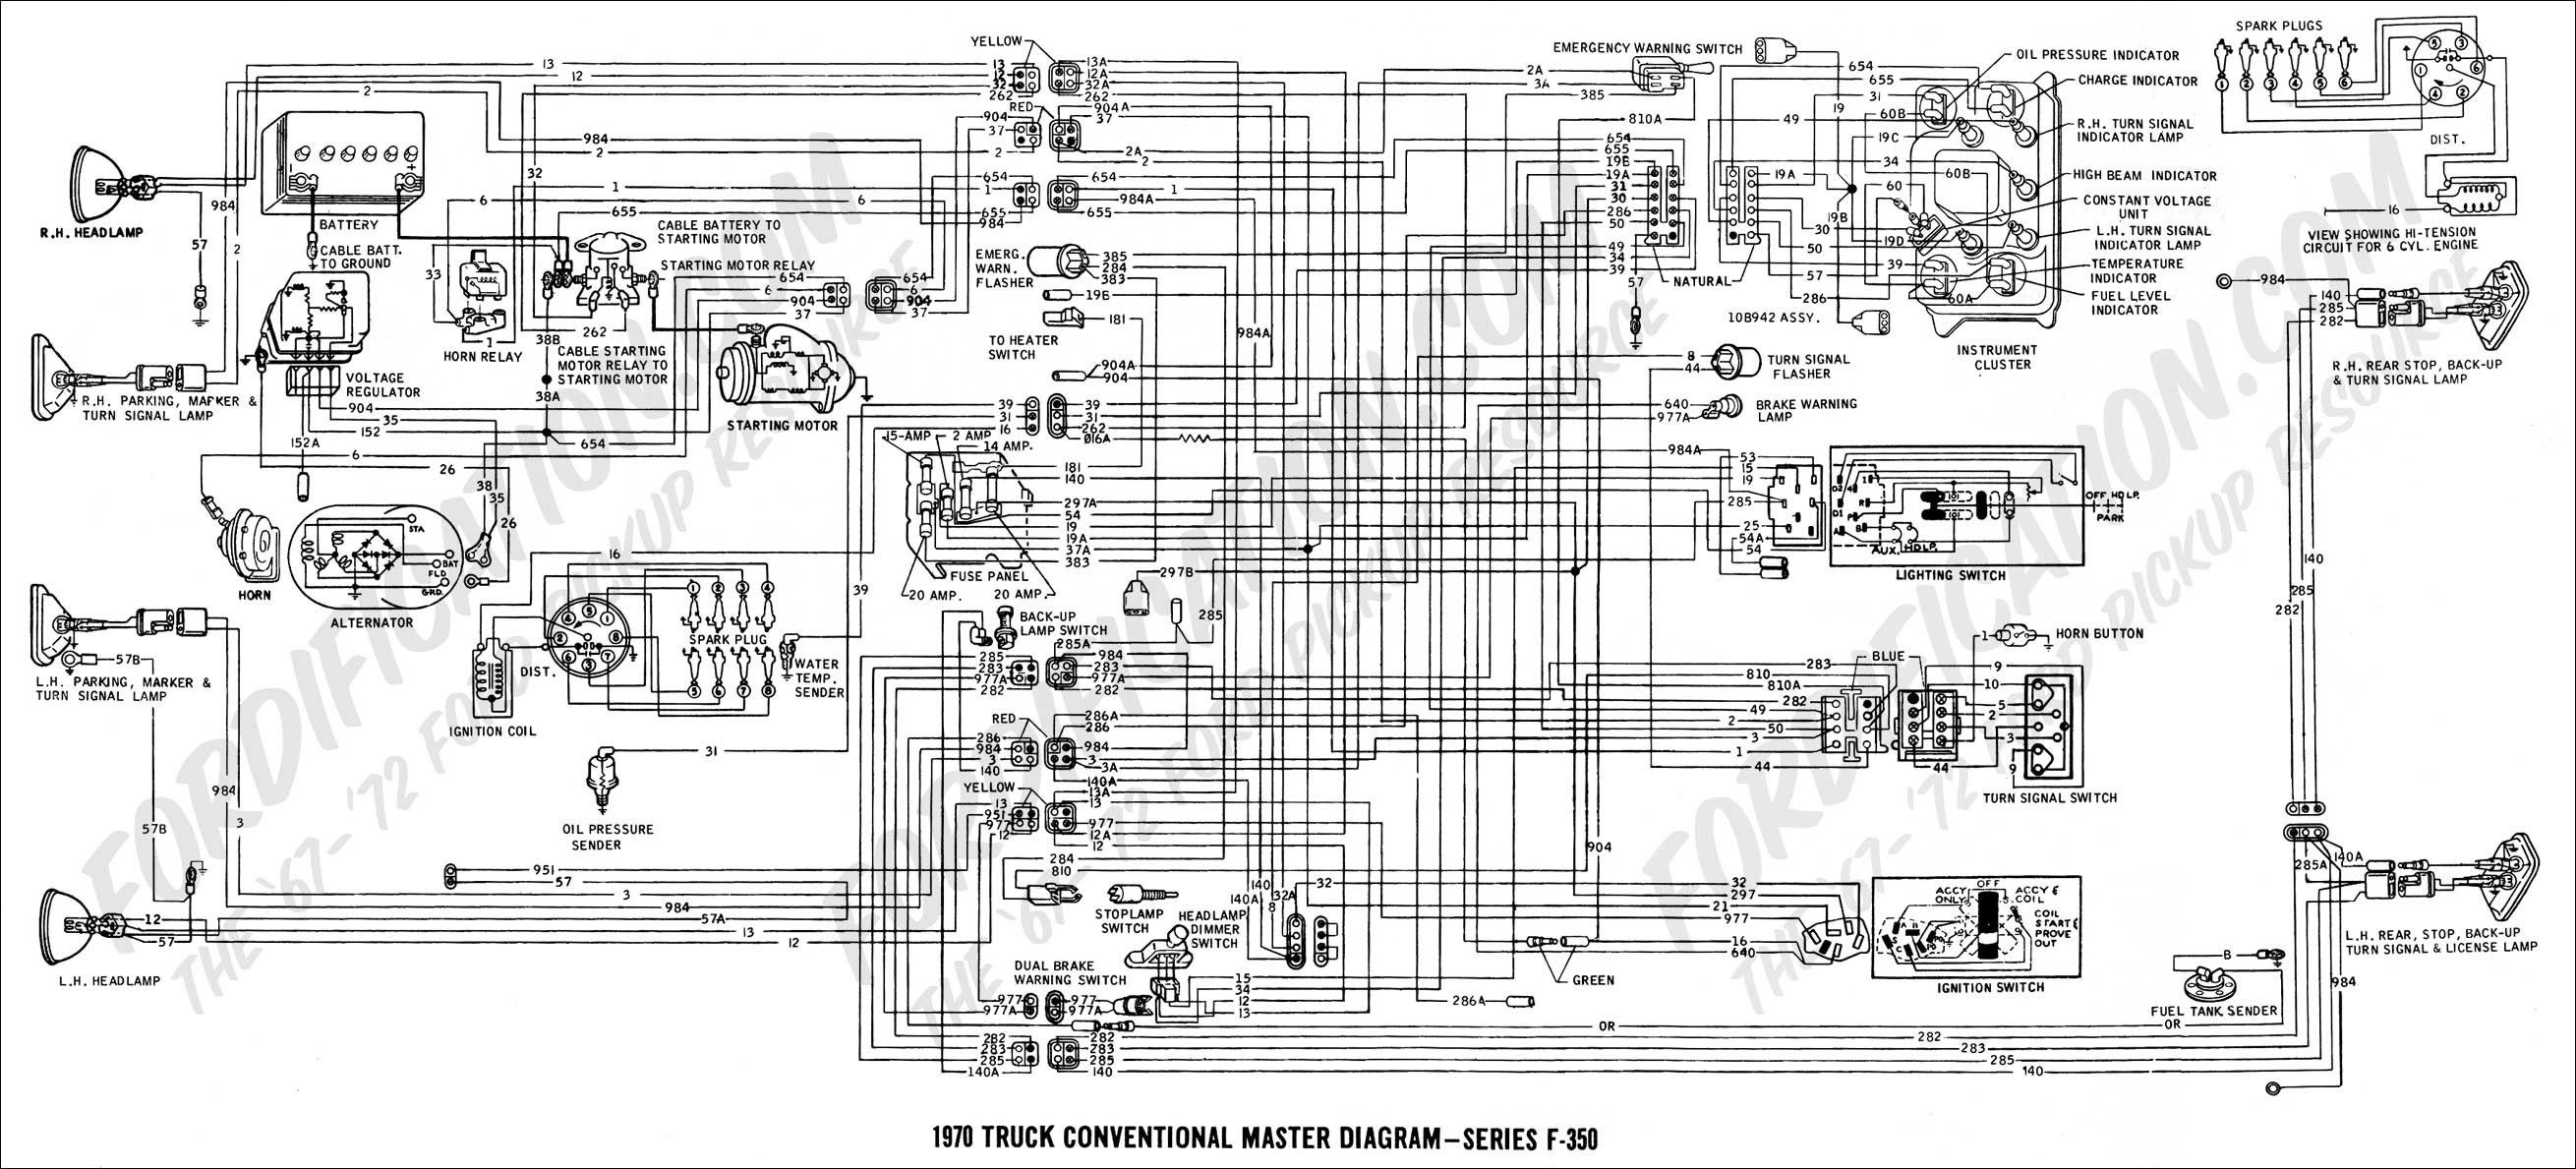 1997 Ford F150 4 6 Engine Diagram In 2021 Engine Diagram Ford Ranger Ford F350